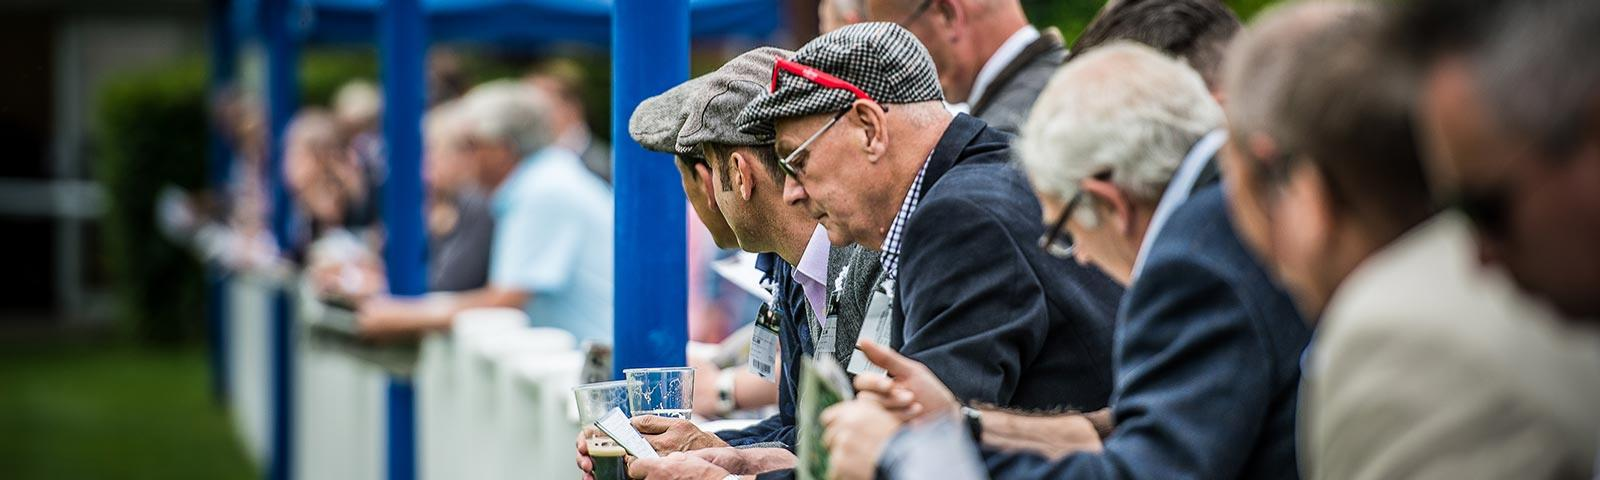 Punters analysing their racecards during a race at Royal Windsor Racecourse